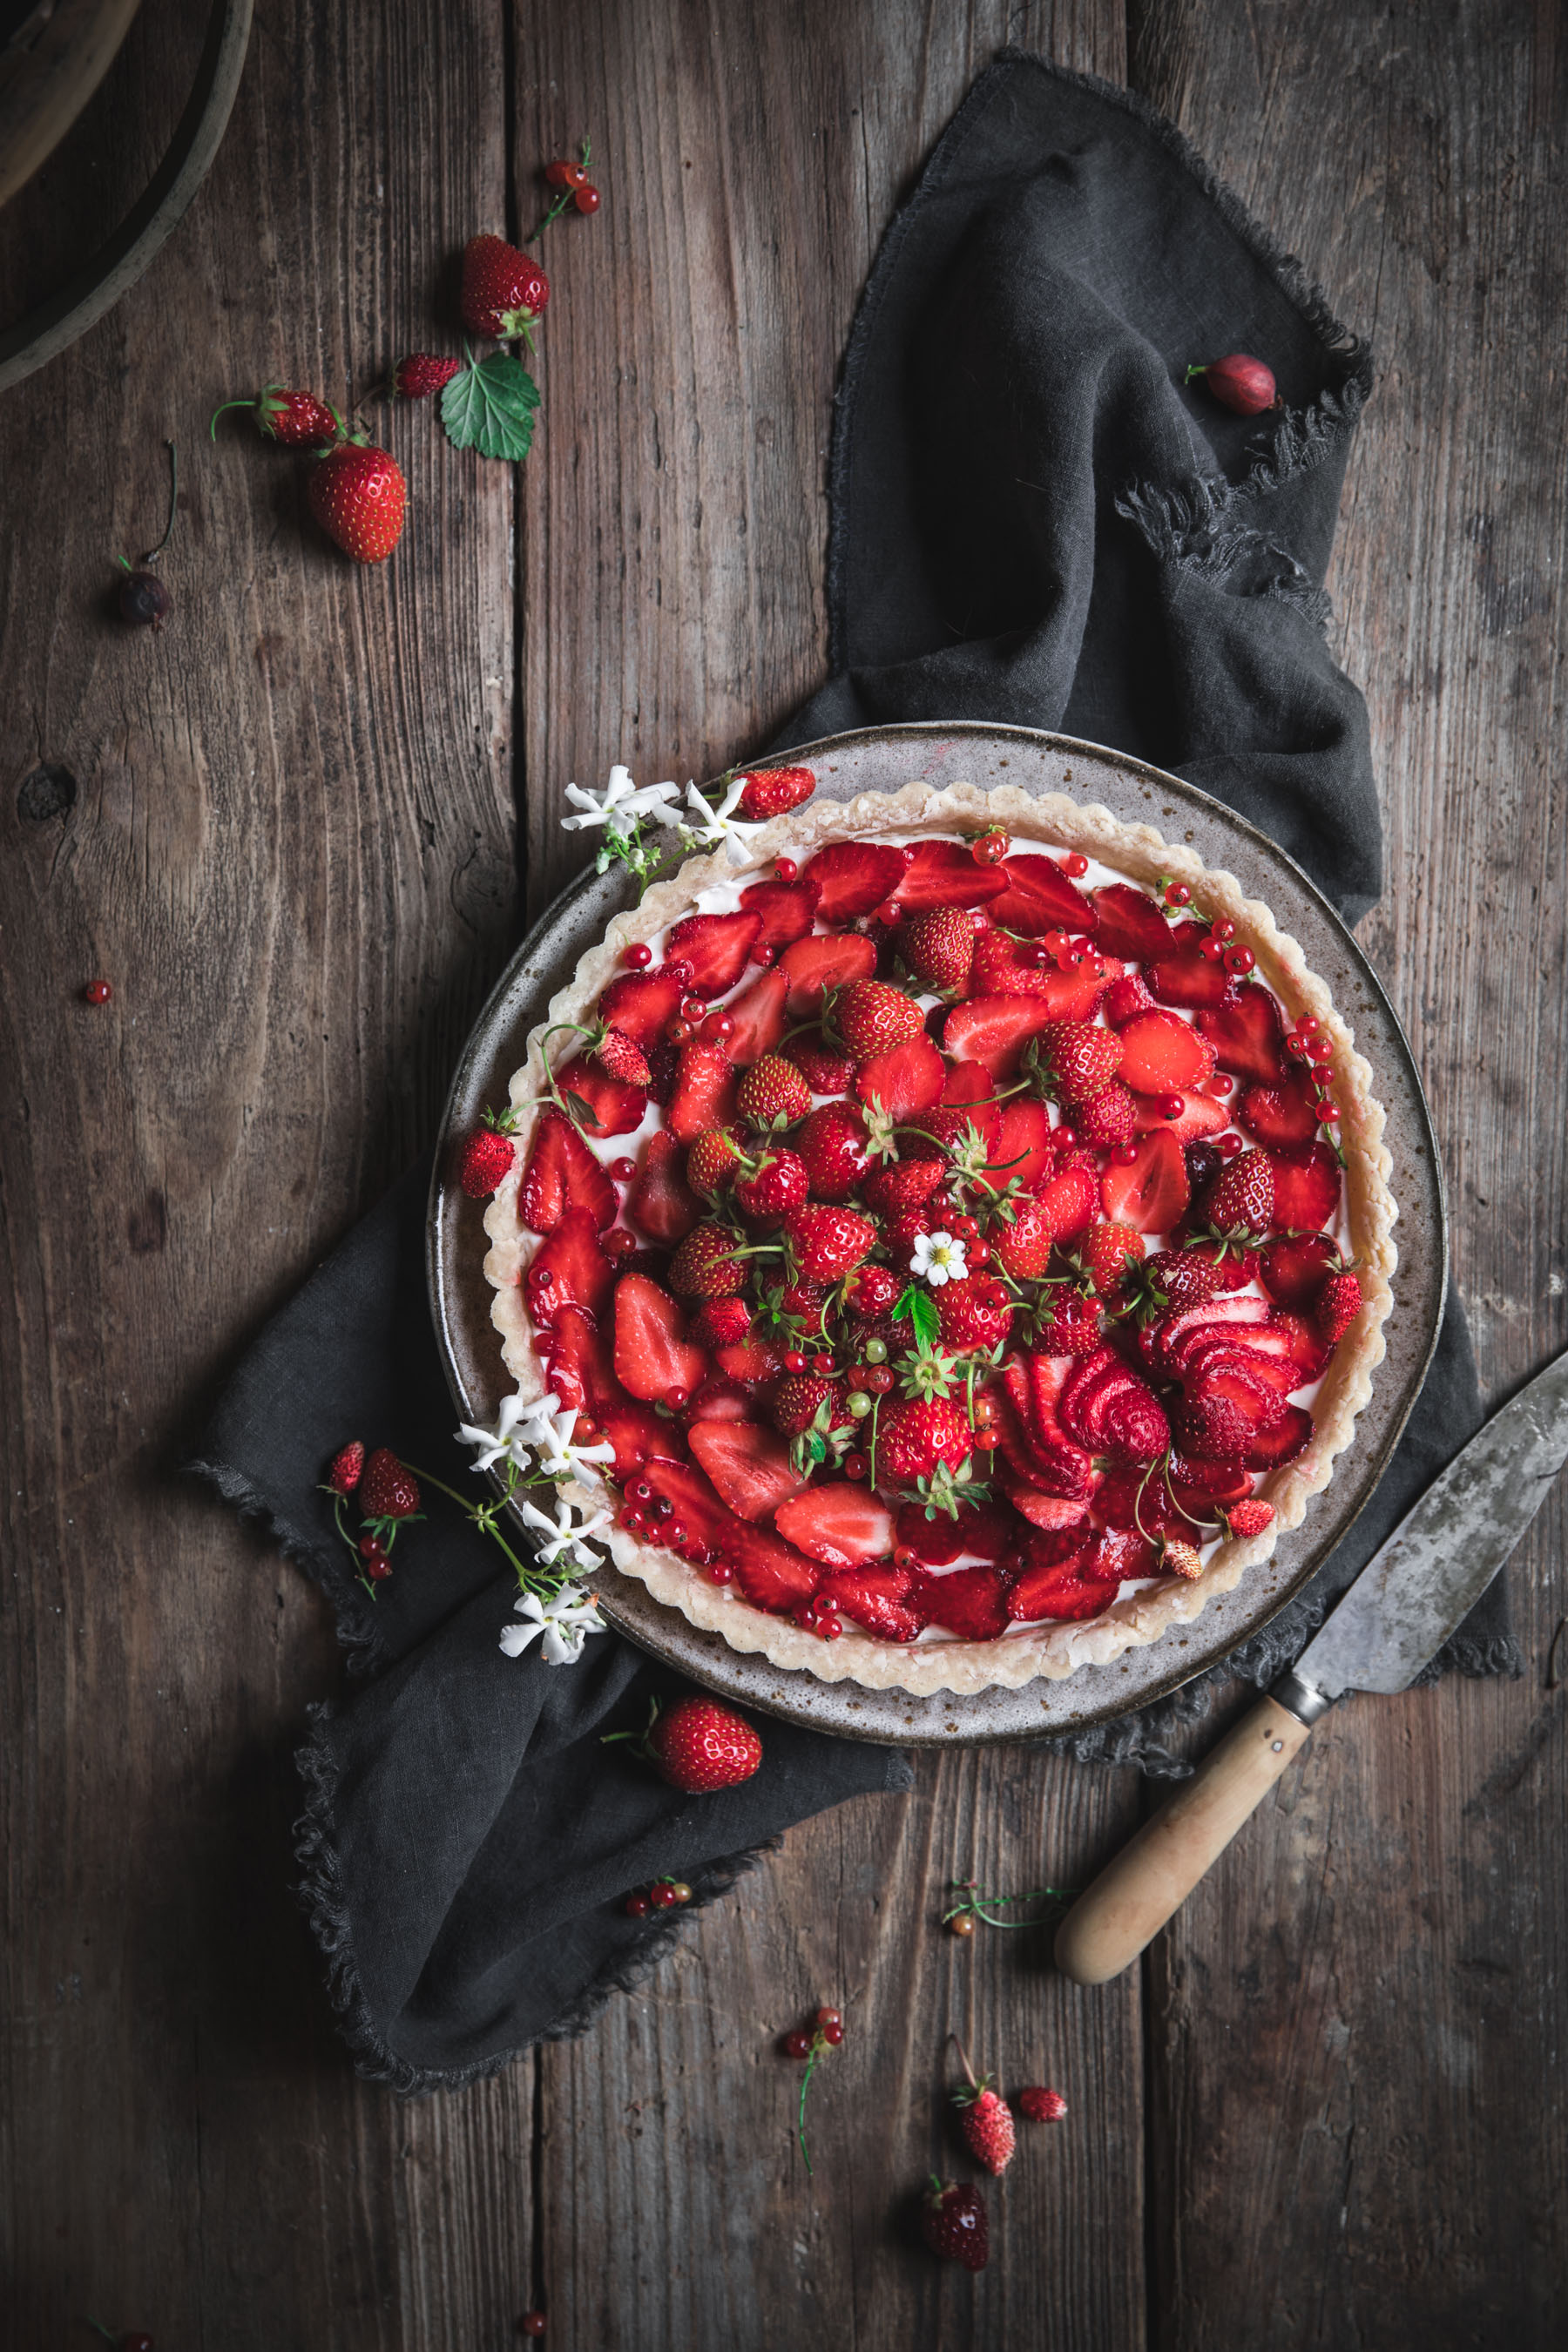 Strawberry Tart with Cream Cheese Filling